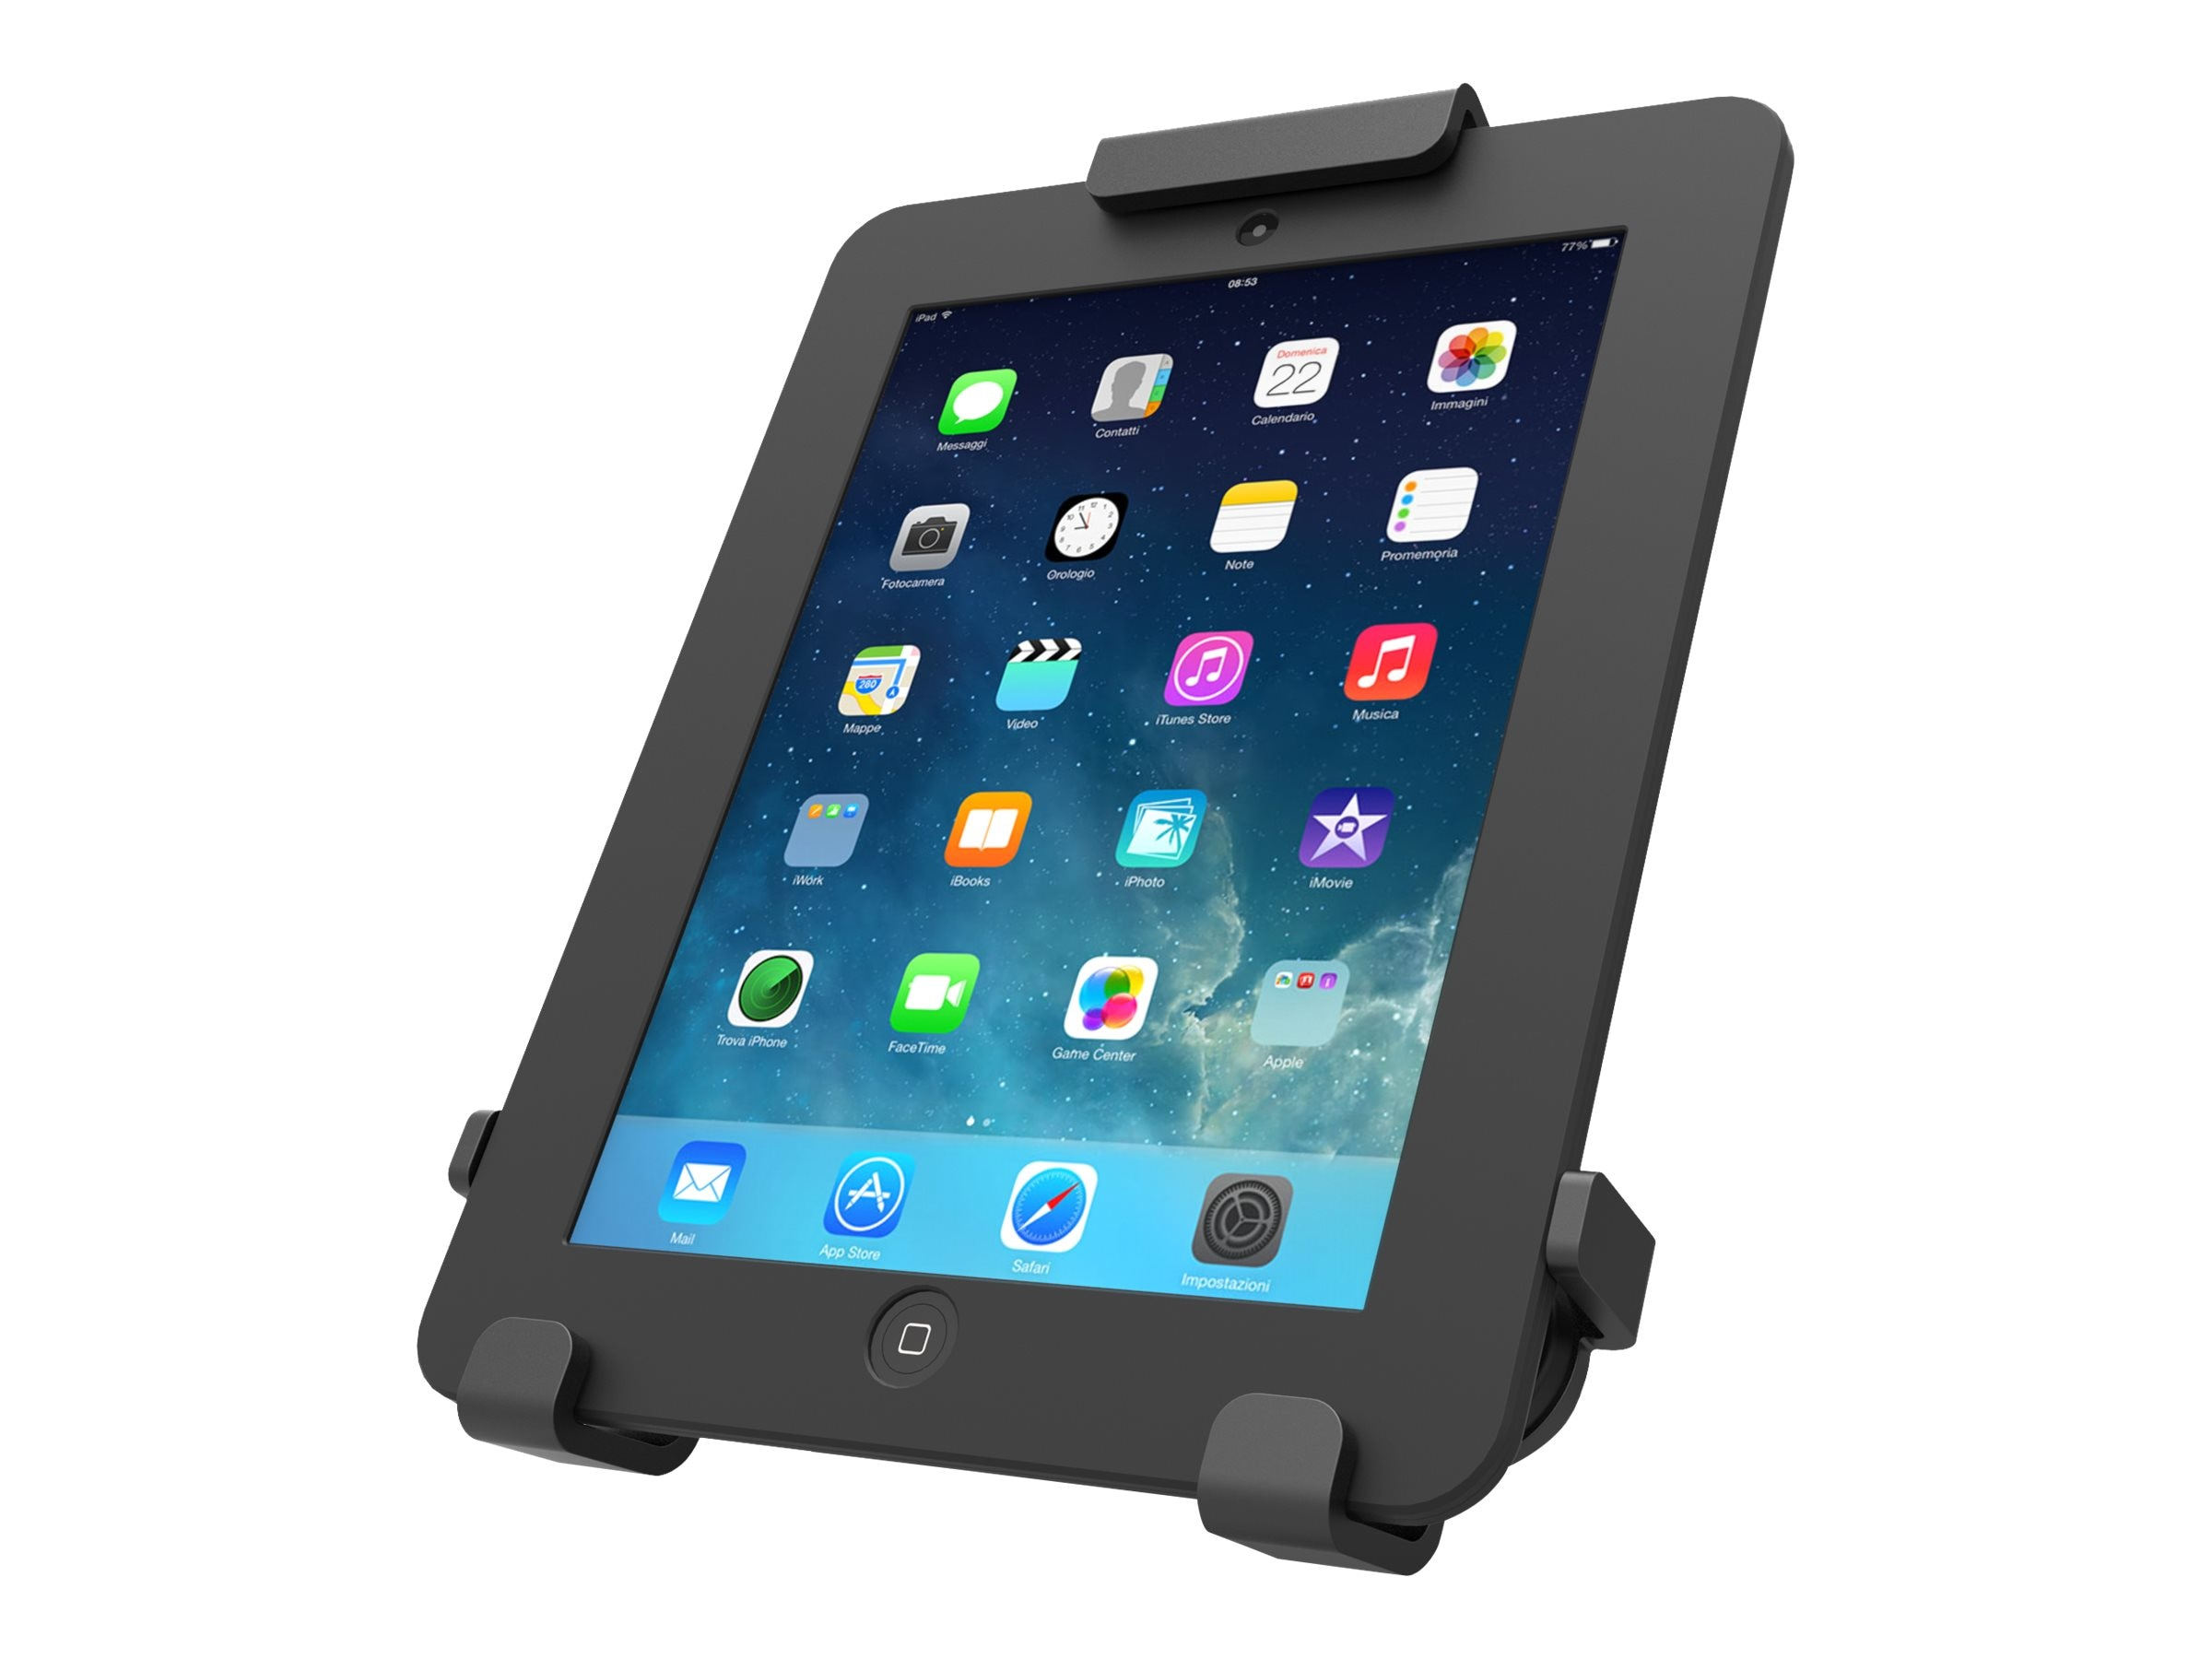 Maclocks Universal Tablet Rugged Locking Case Mount, 820BRCH, 31261182, Security Hardware